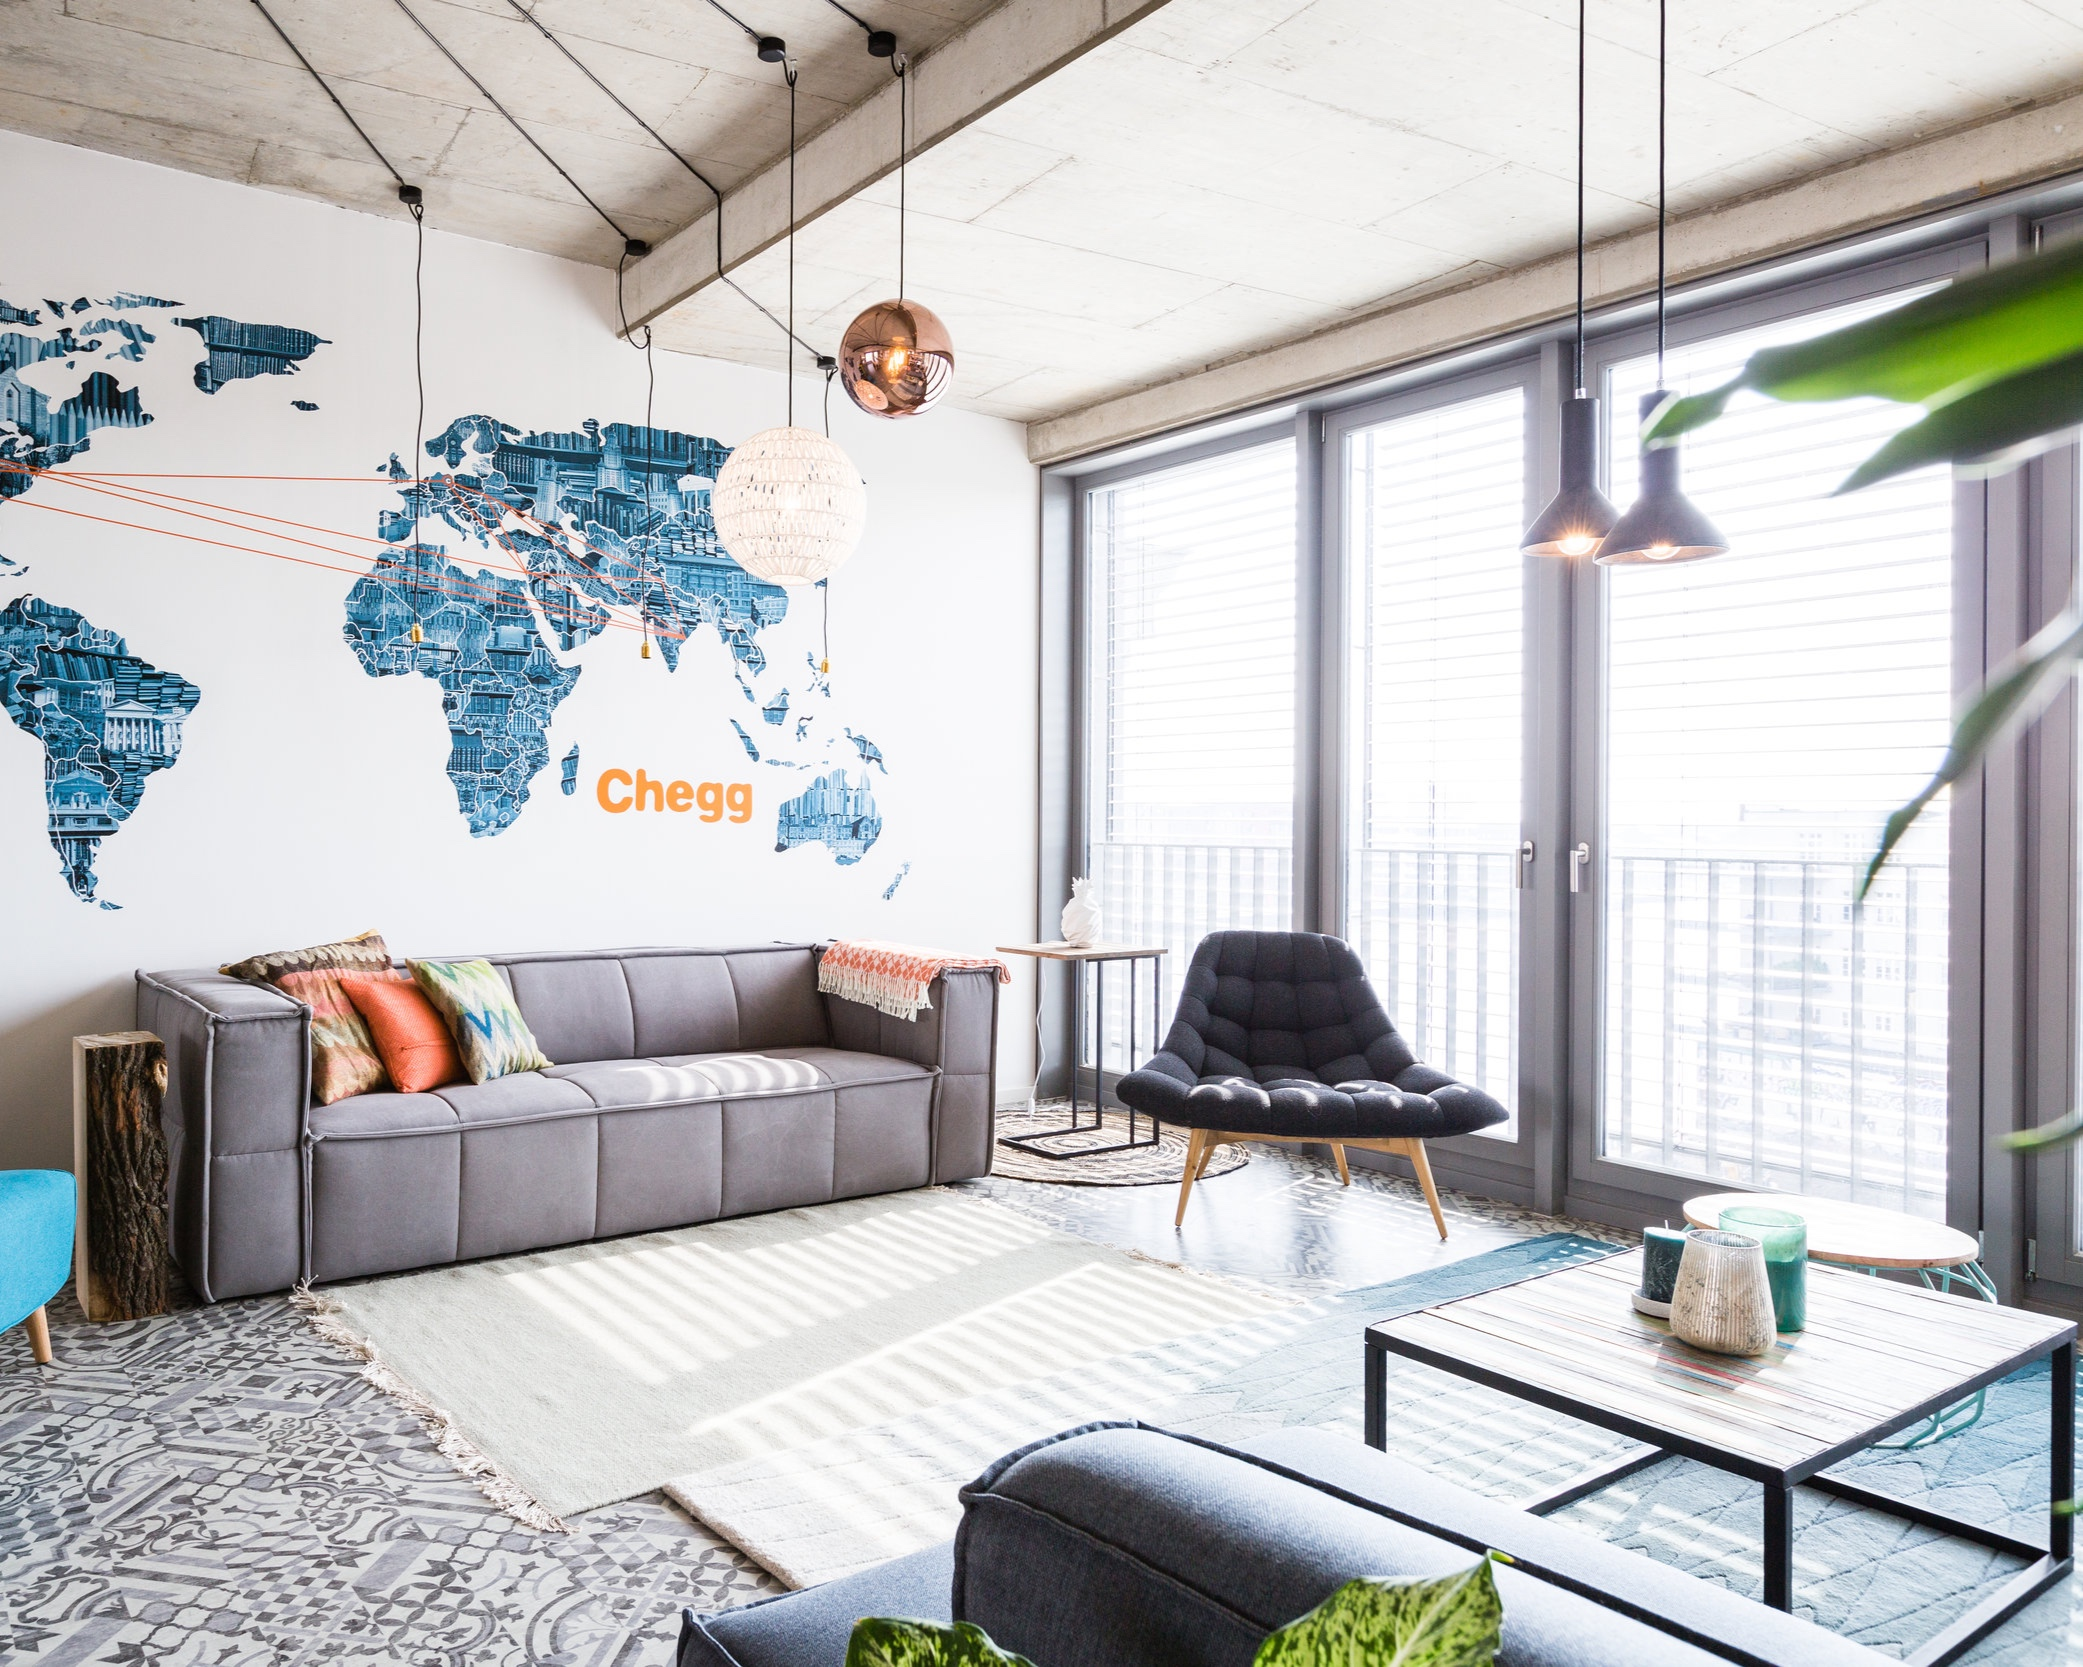 Chegg   OFFICE DESIGN